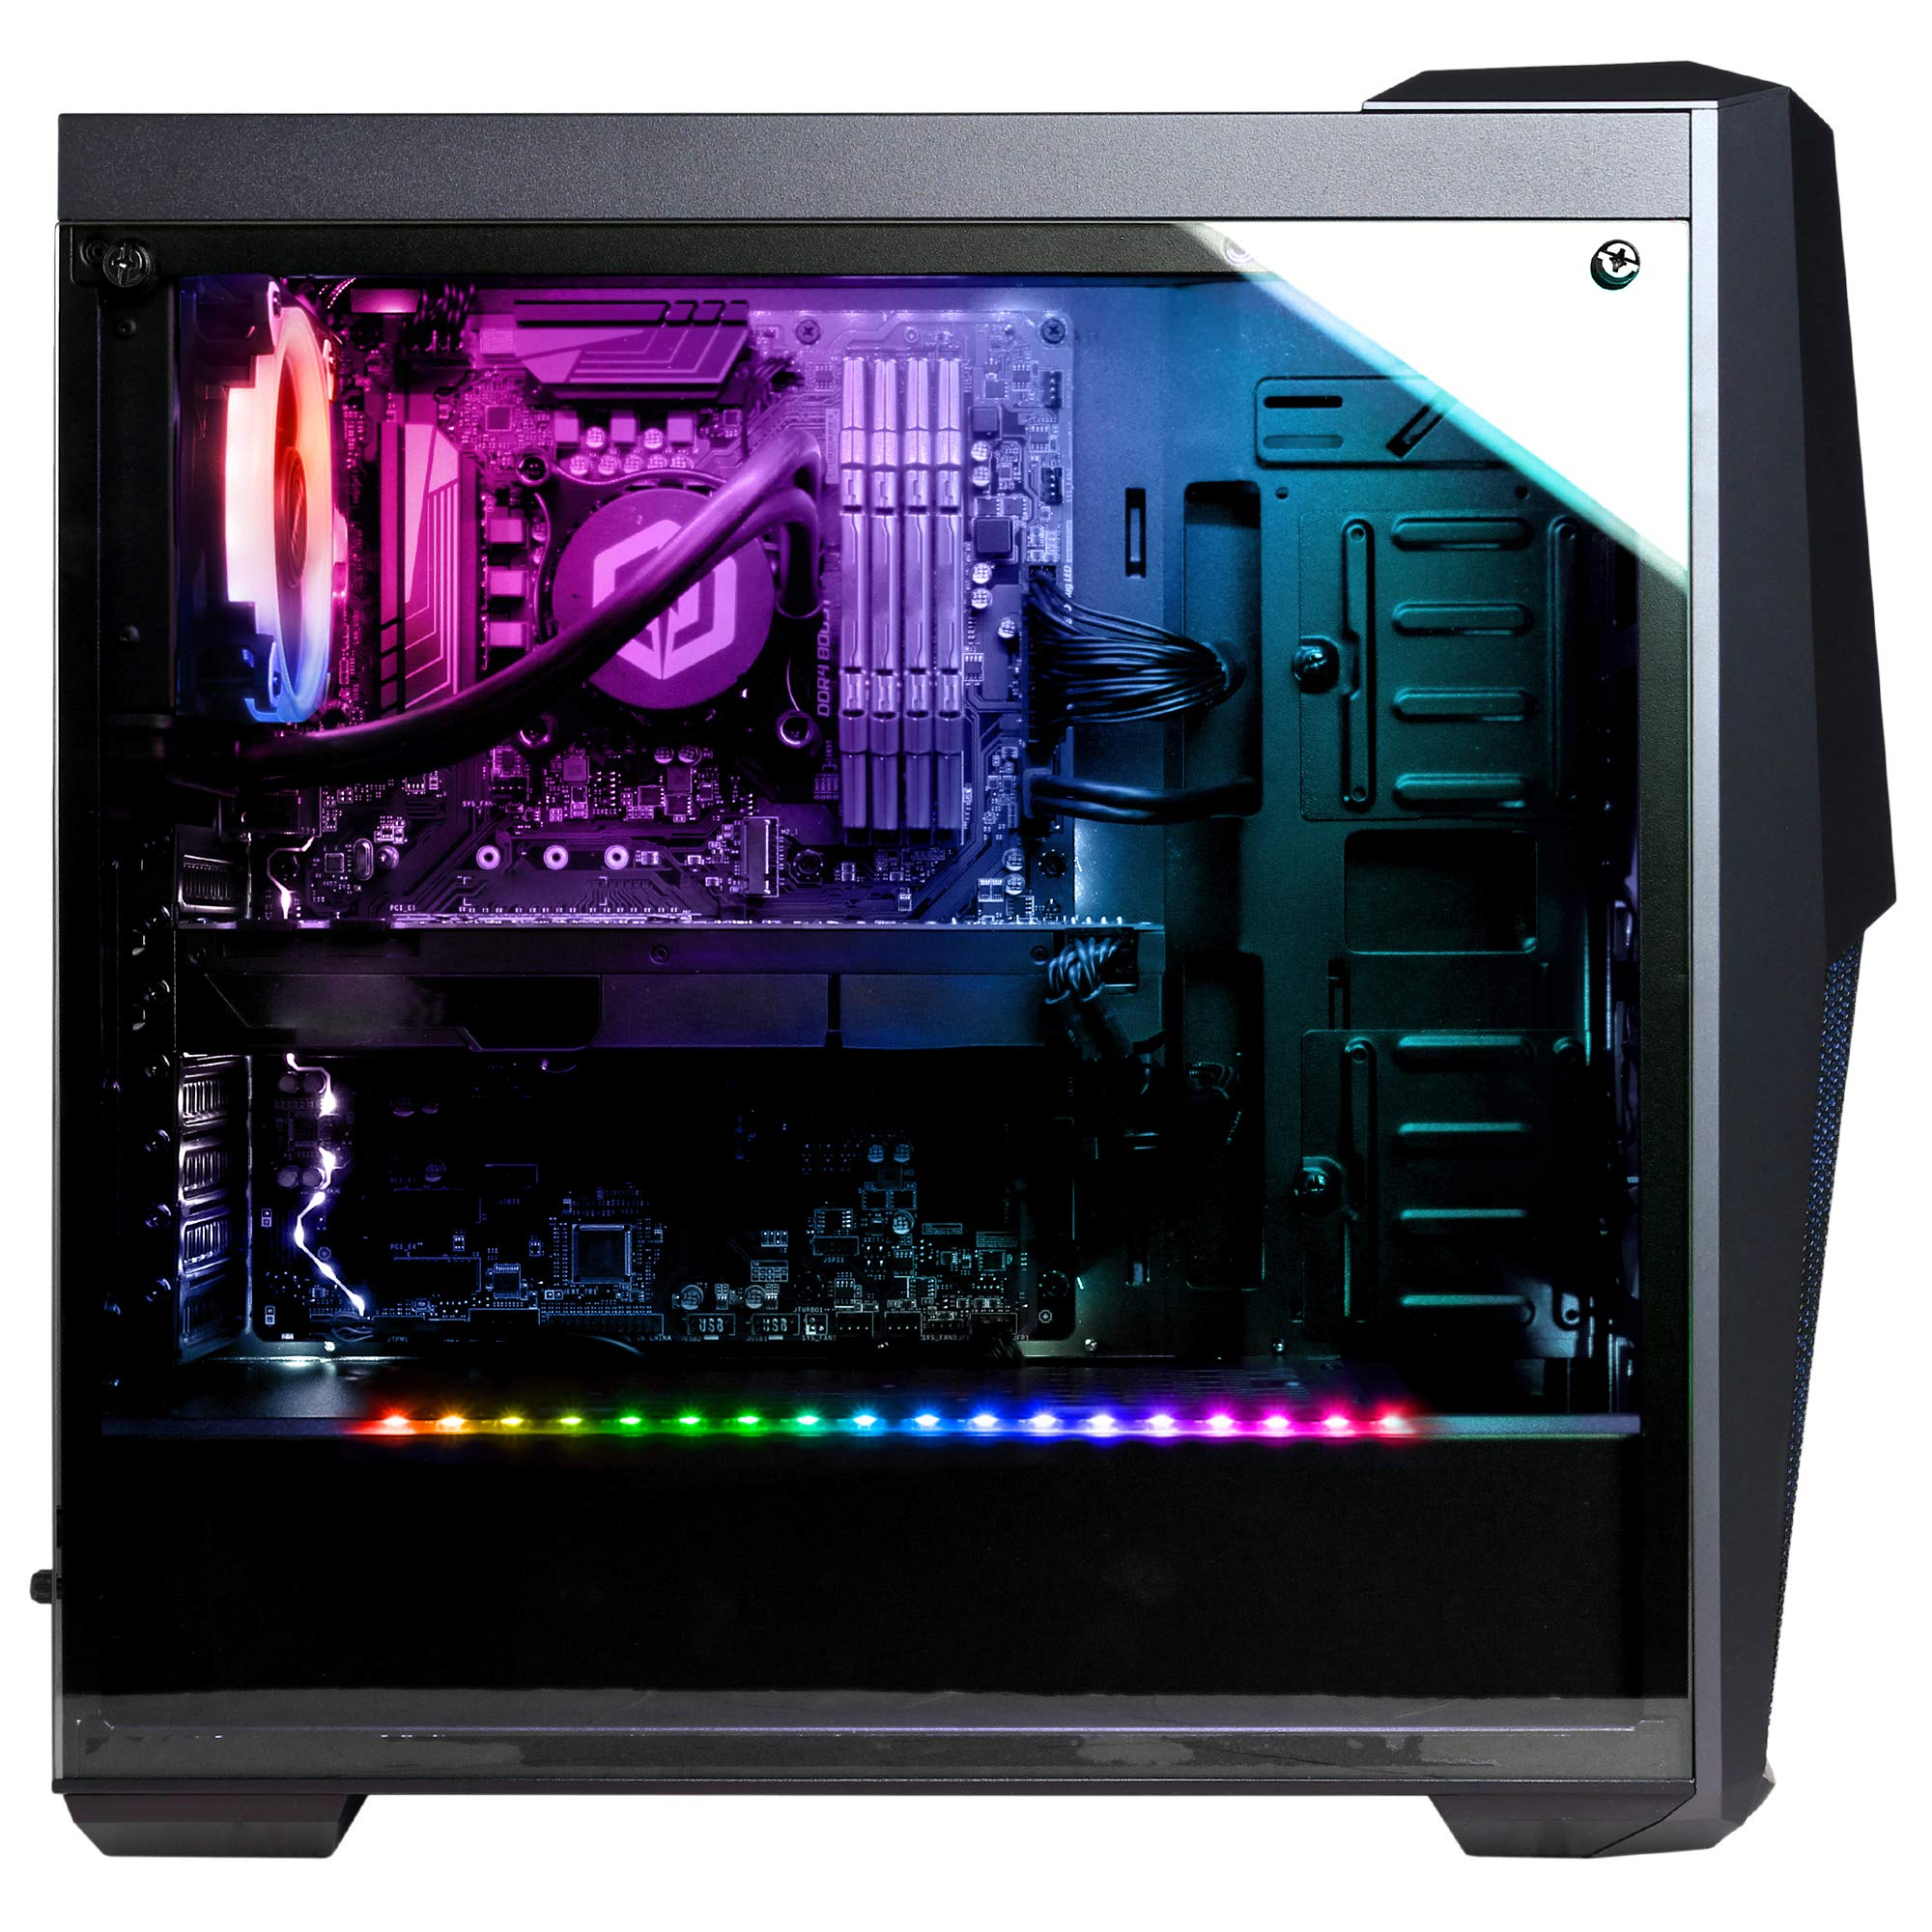 Best gaming PC deals: Desktops that offer better value ... |Cool Gaming Computers